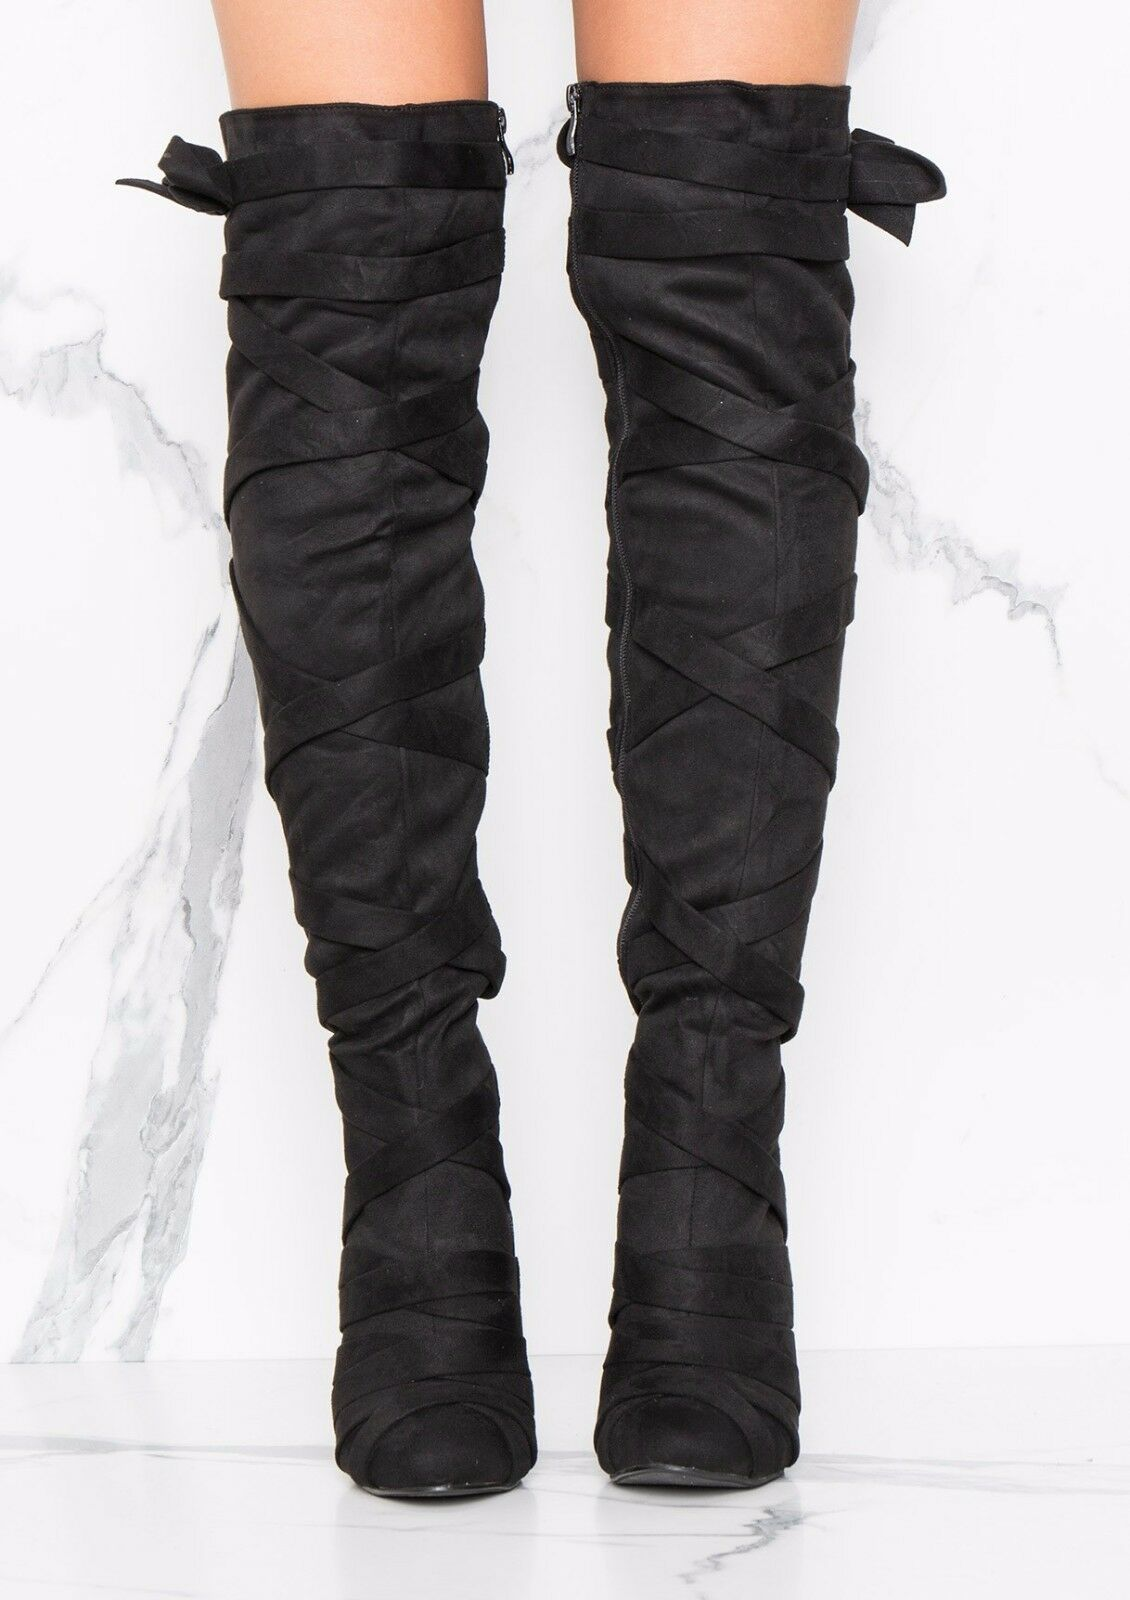 No Doubt Faux Suede Strap Detailing Over The Knee High Boot - Black - UK 4-7